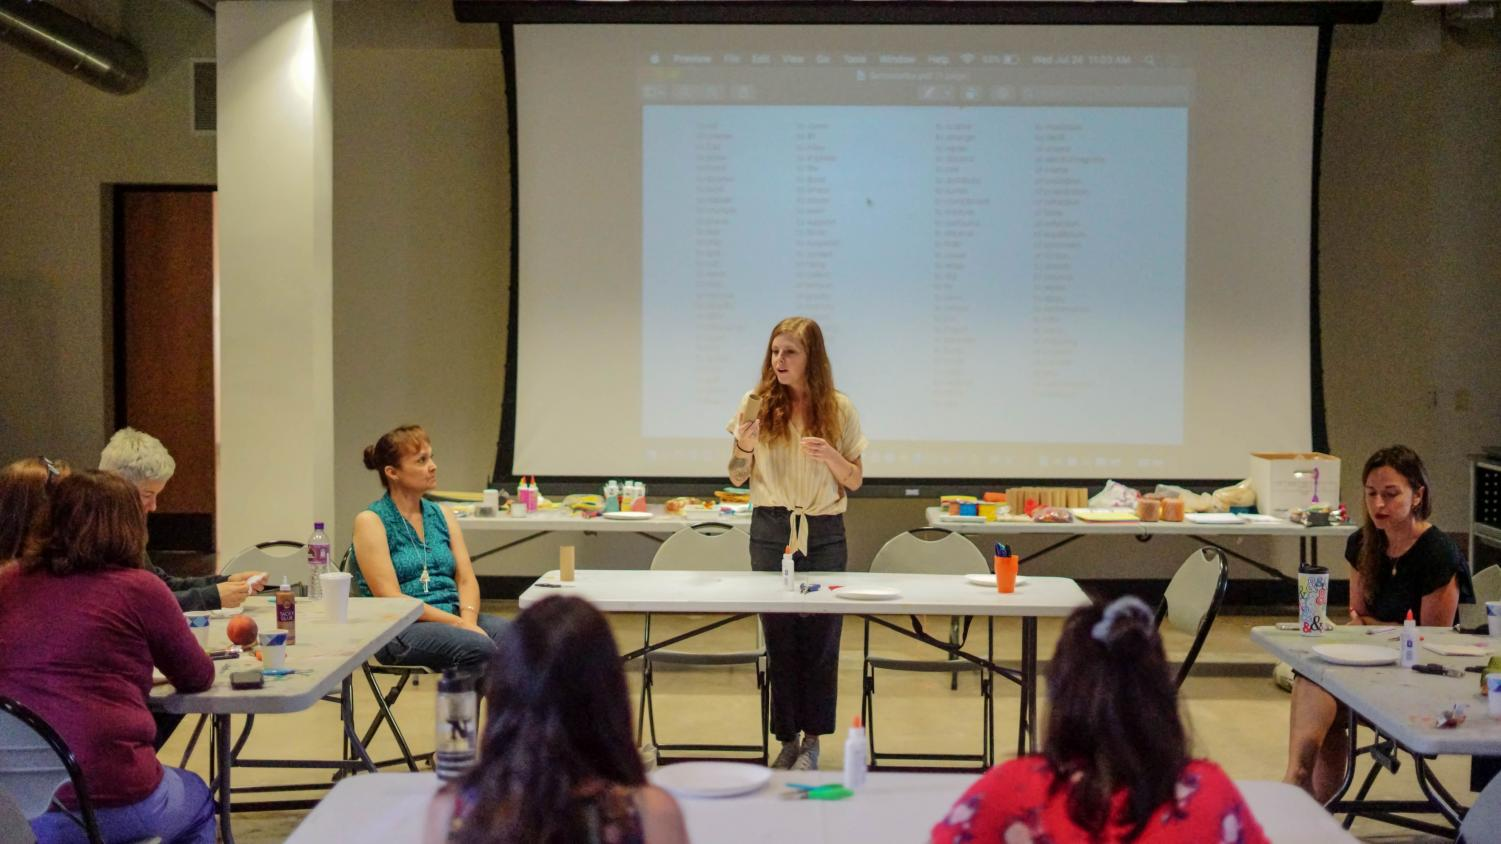 Assistant Professor Jess Tolbert as the instructor of the Jewelry Making Workshop at the Stanlee & Gerald Rubin Center